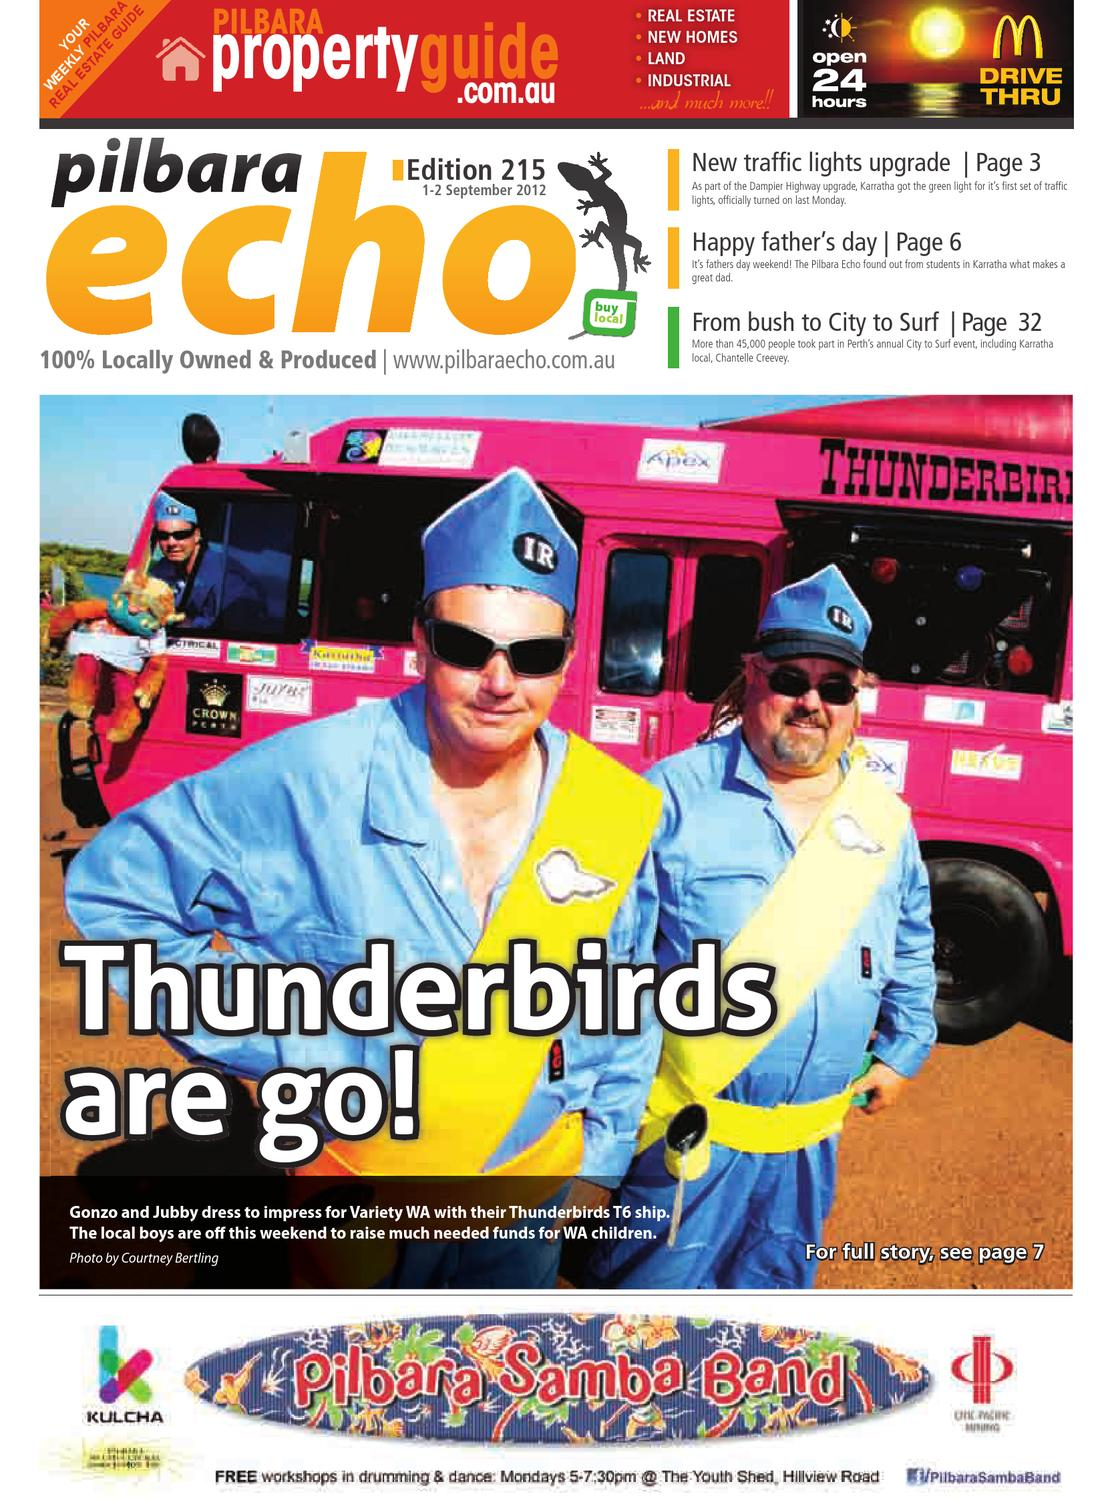 762097d0f9c 215 Sept1 2012 by Pilbara Echo Newspaper - issuu